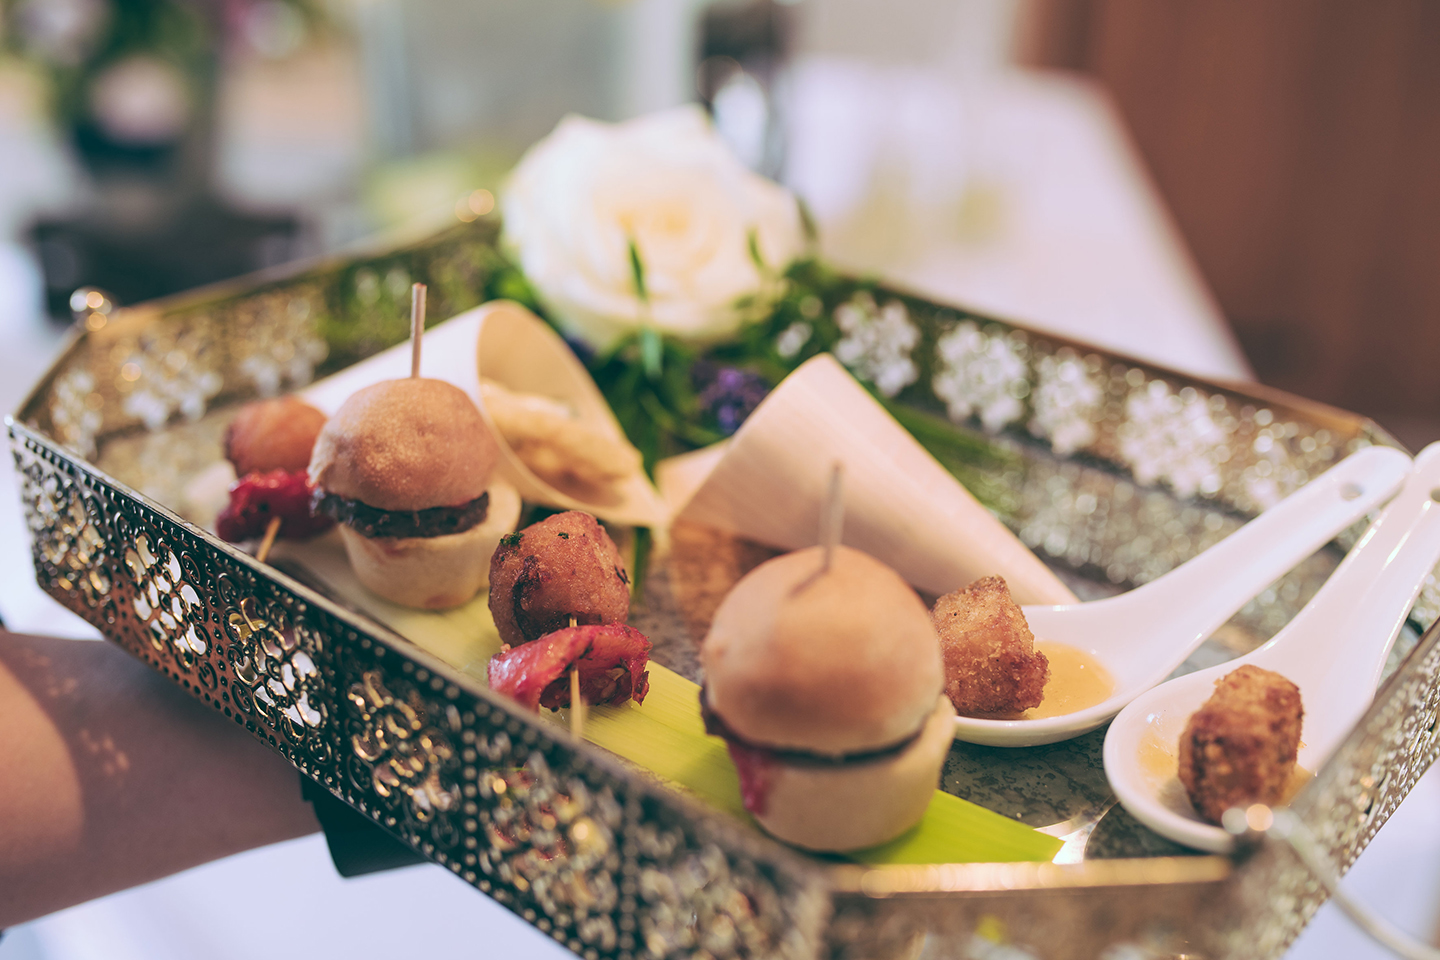 The couple served a delicious selection of wedding canapes during their drink's reception at Bassmead Manor Barns